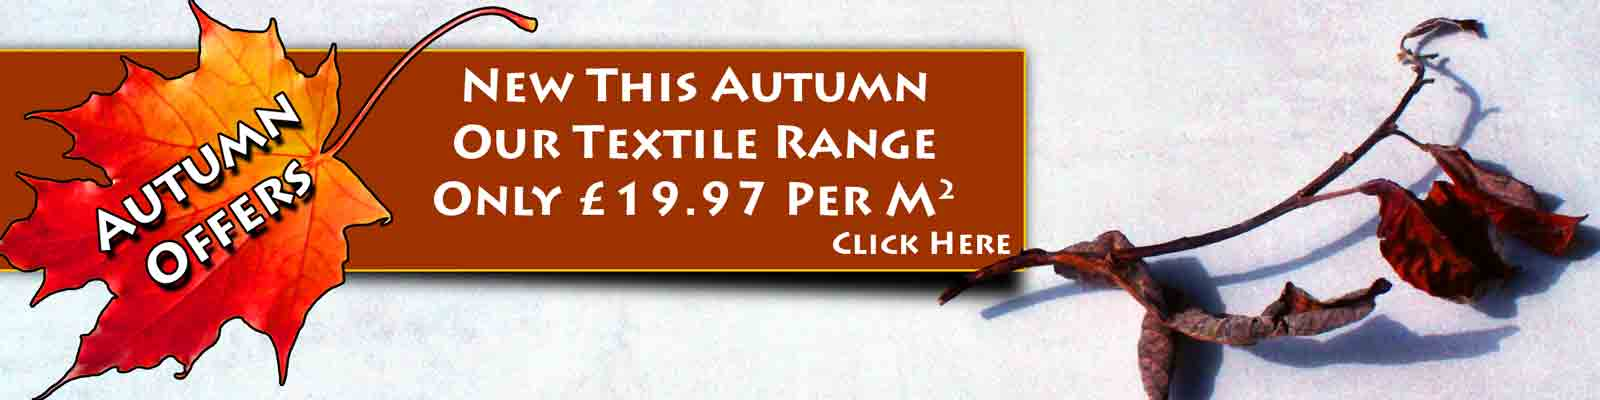 New Textiles This Autumn